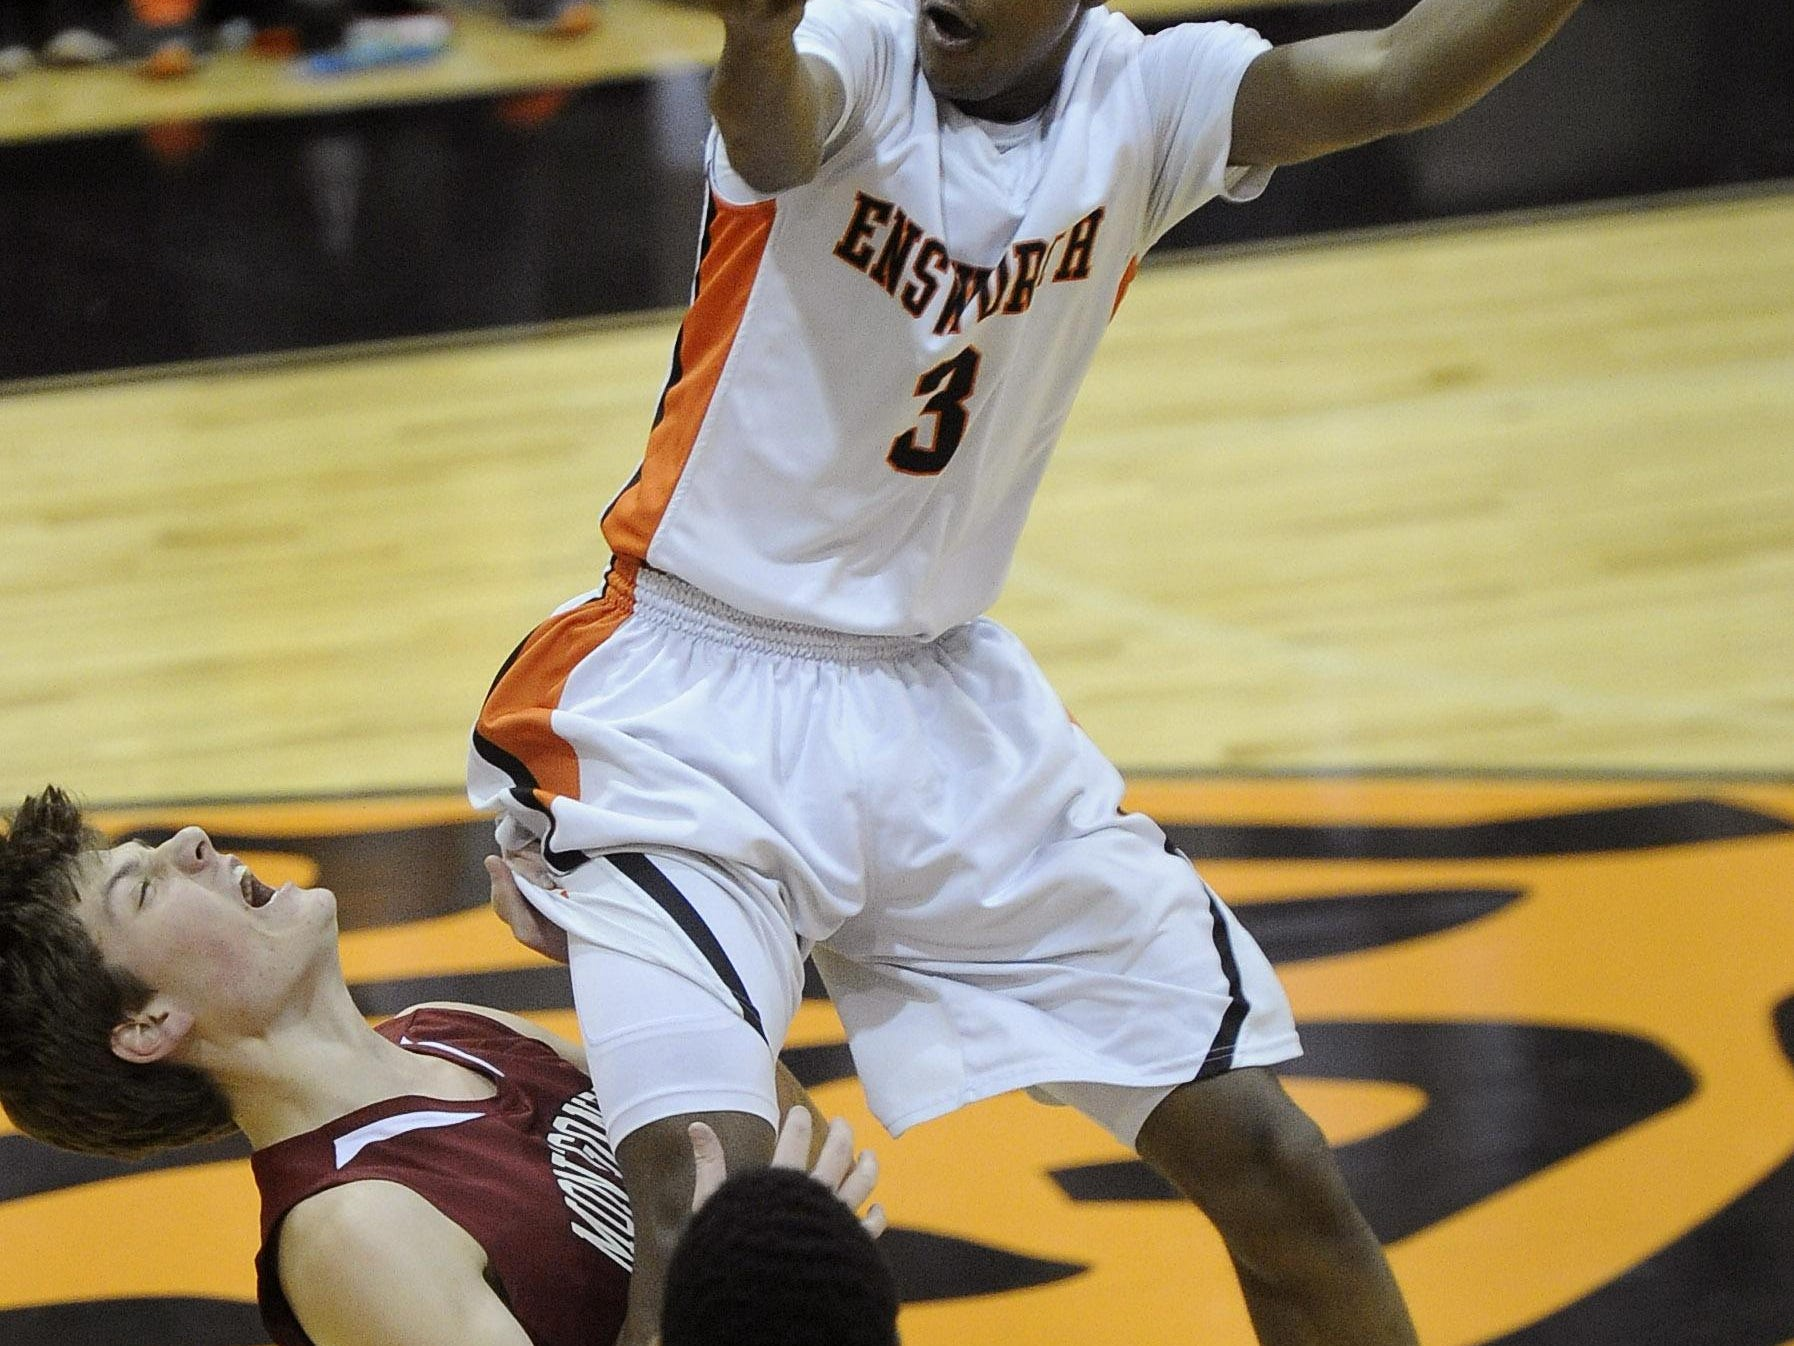 Ensworth's Jordan Bone (3) signed a letter of intent to play for Tennessee next season.